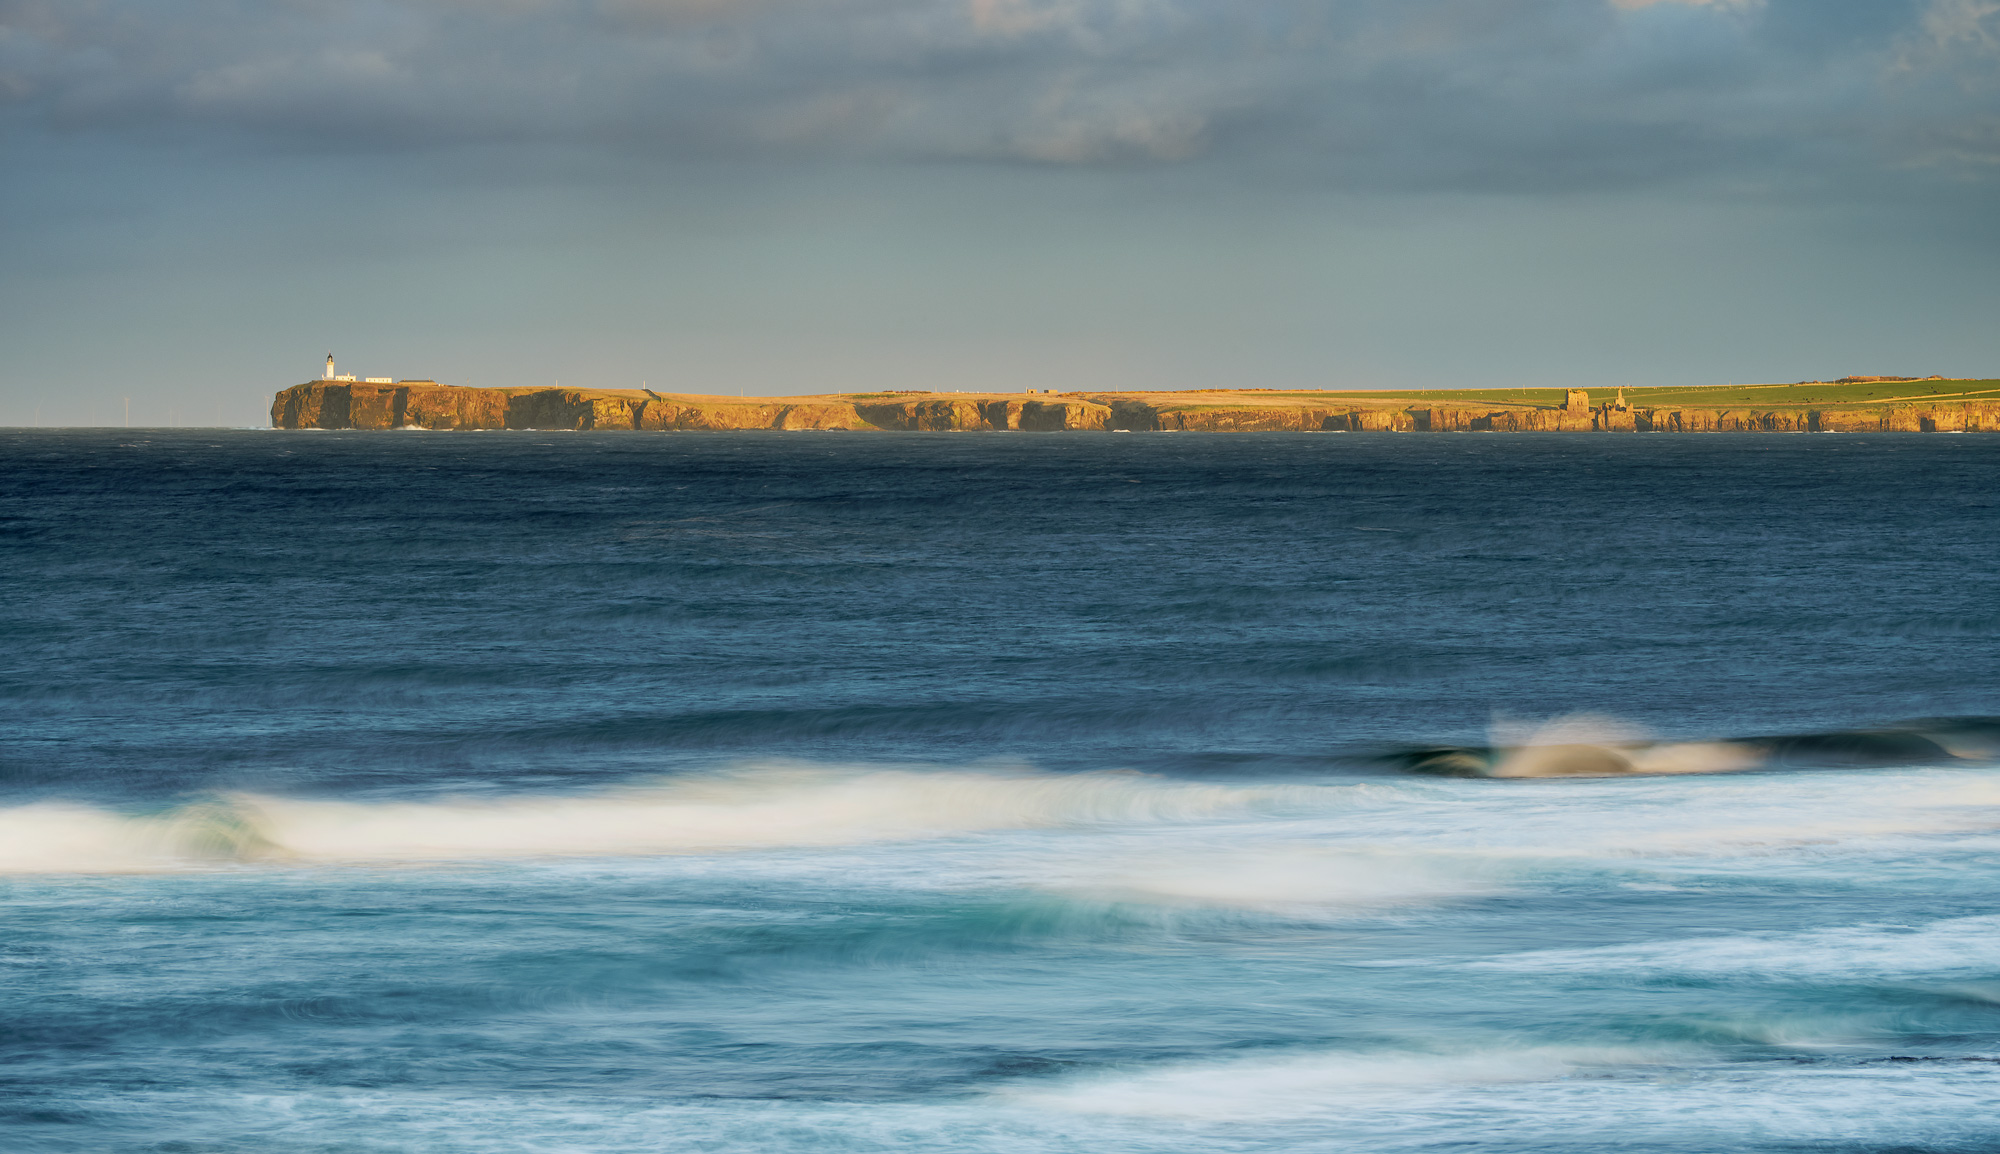 Noss Head lighthouse above a stormy sea at the end of a golden sunlit peninsula as seem from Keiss on the Caithness coast.